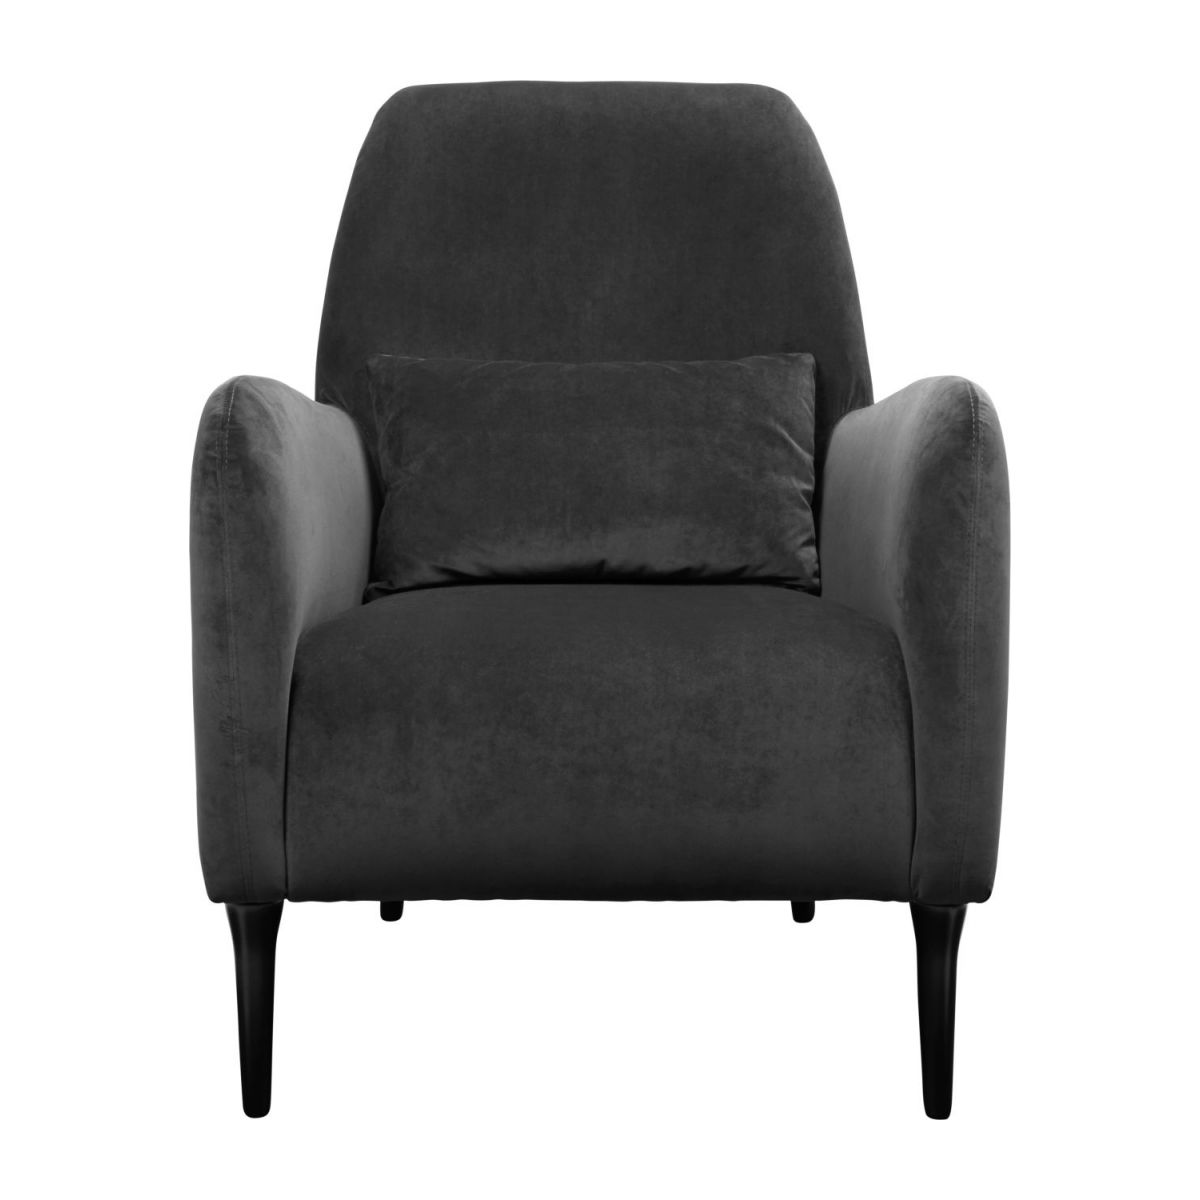 Velvet armchair, grey n°2